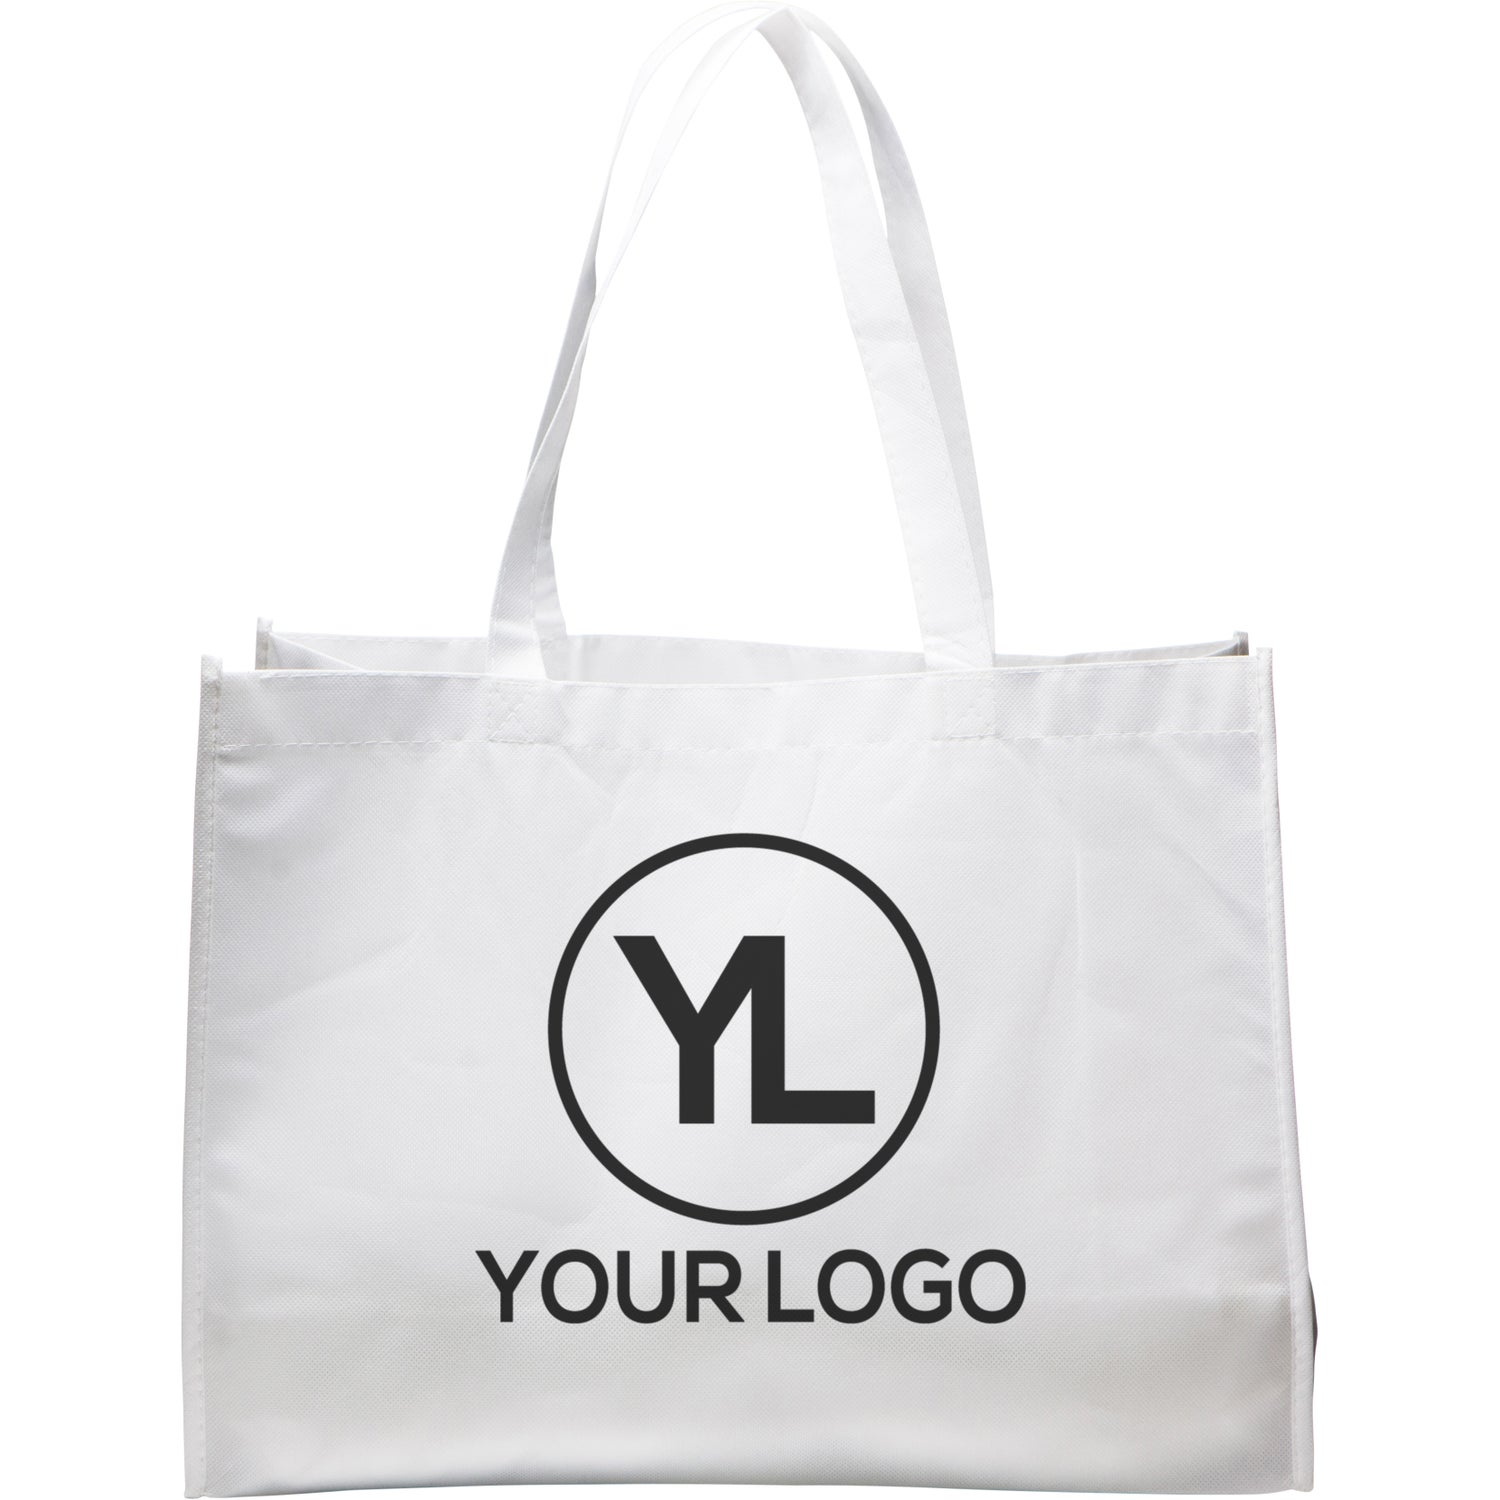 Promotional Medium Eco-Friendly Non Woven Tote Bags with Custom Logo for   0.981 Ea. f9a972a07fd0